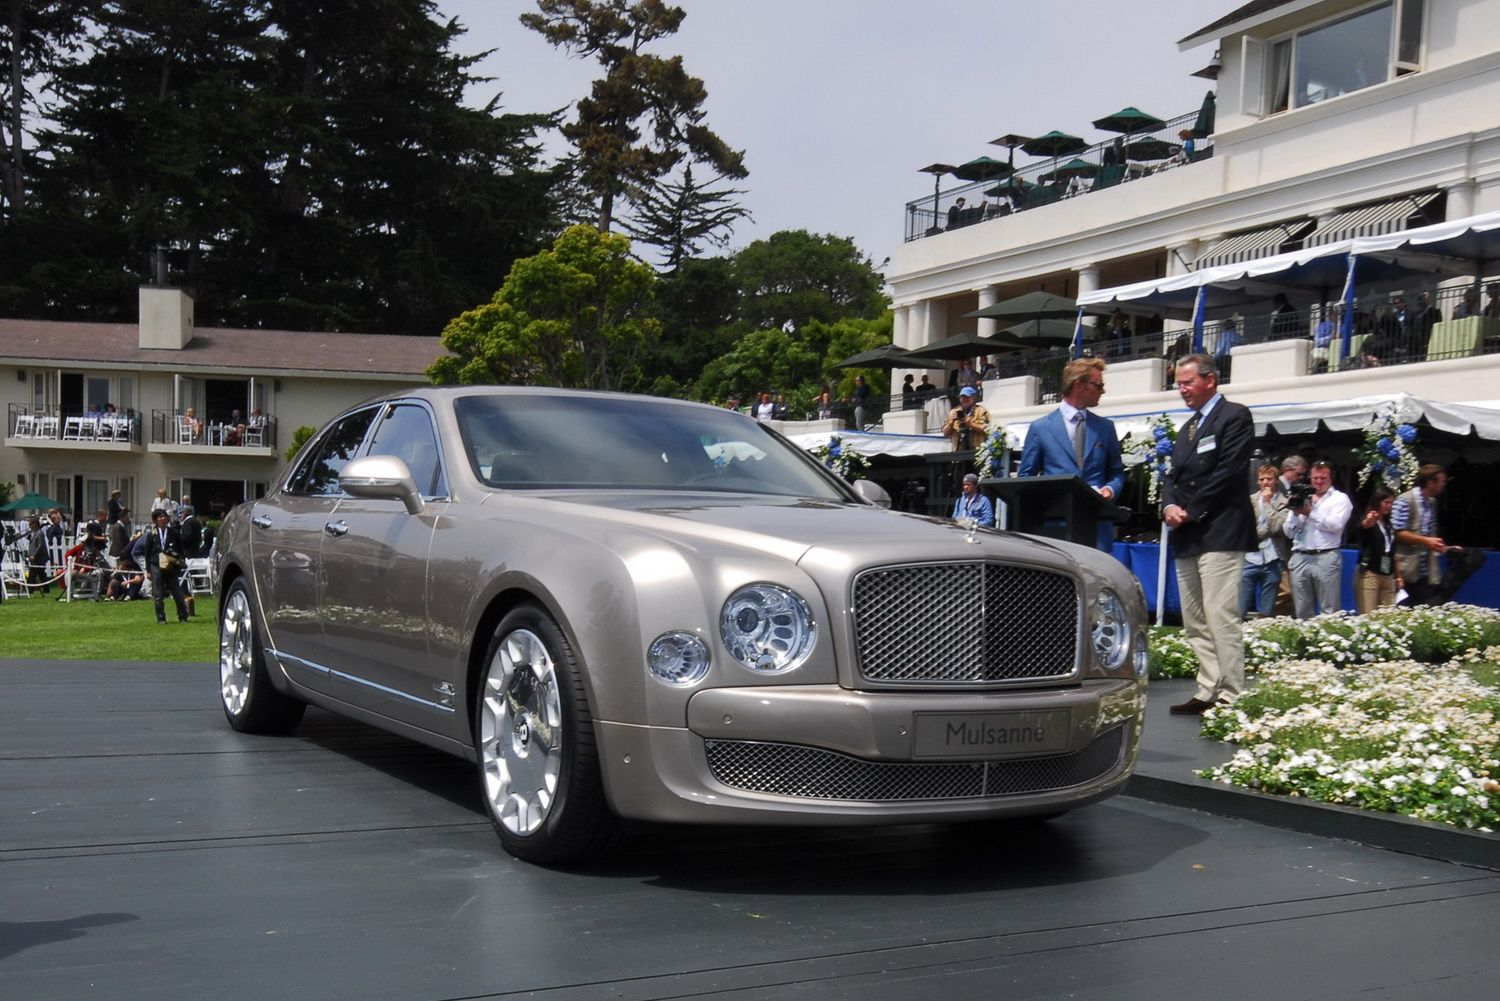 2011 bentley mulsanne cars news review. Black Bedroom Furniture Sets. Home Design Ideas